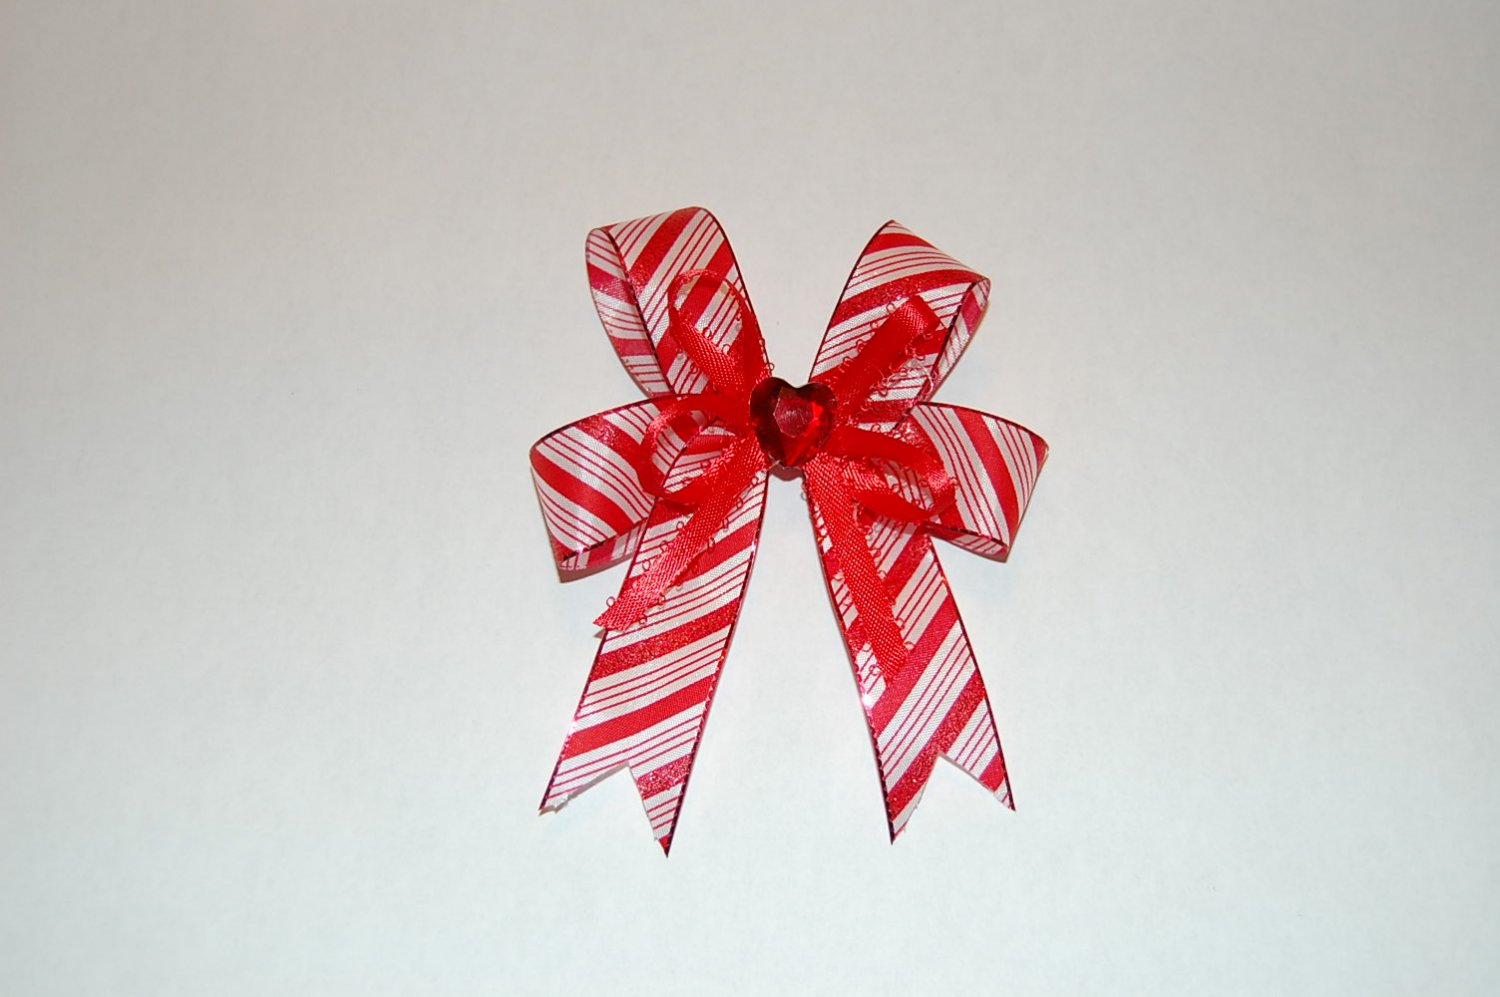 Layered Bow Striped, Red/White, Jewel Center Hair Clip